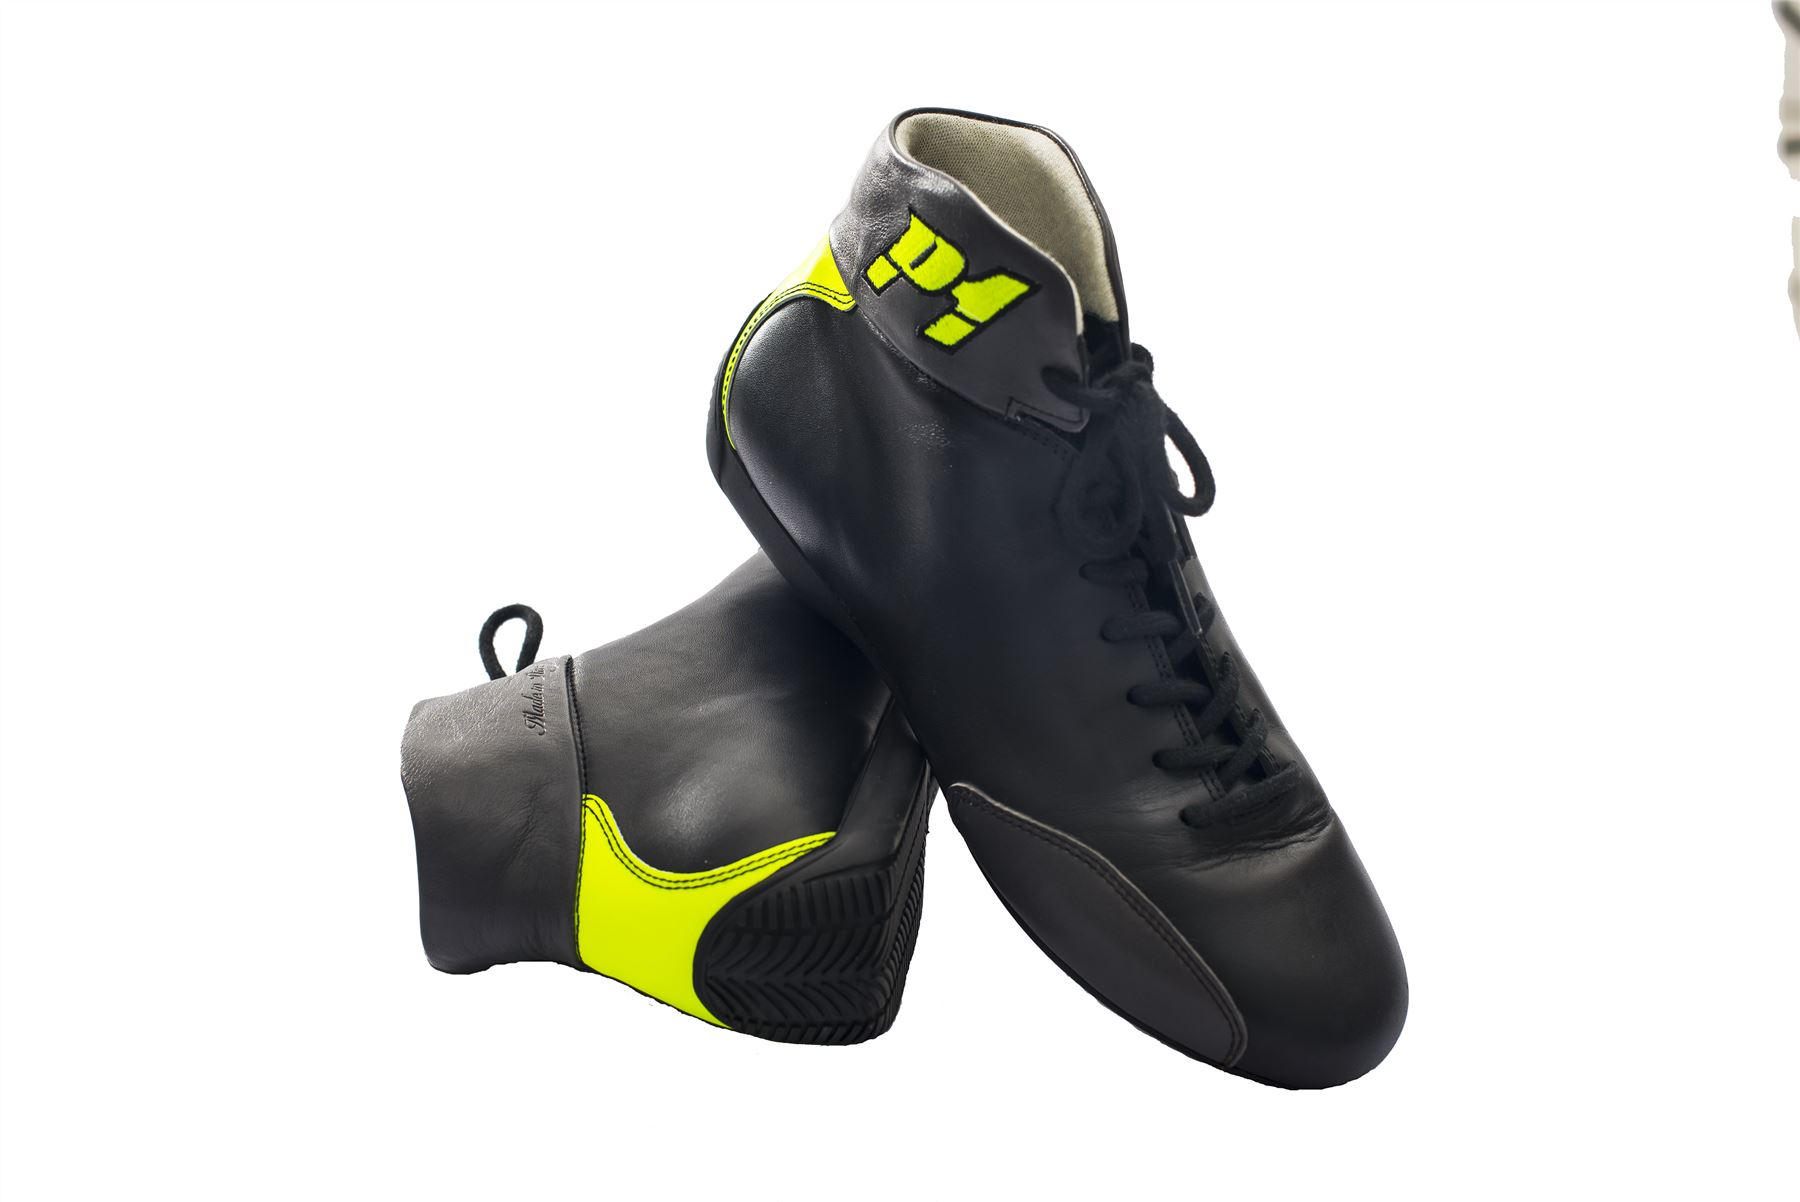 Indexbild 11 - P1-Racewear-Monza-FIA-Approved-Soft-Leather-Race-Rally-Boots-Black-Fluro